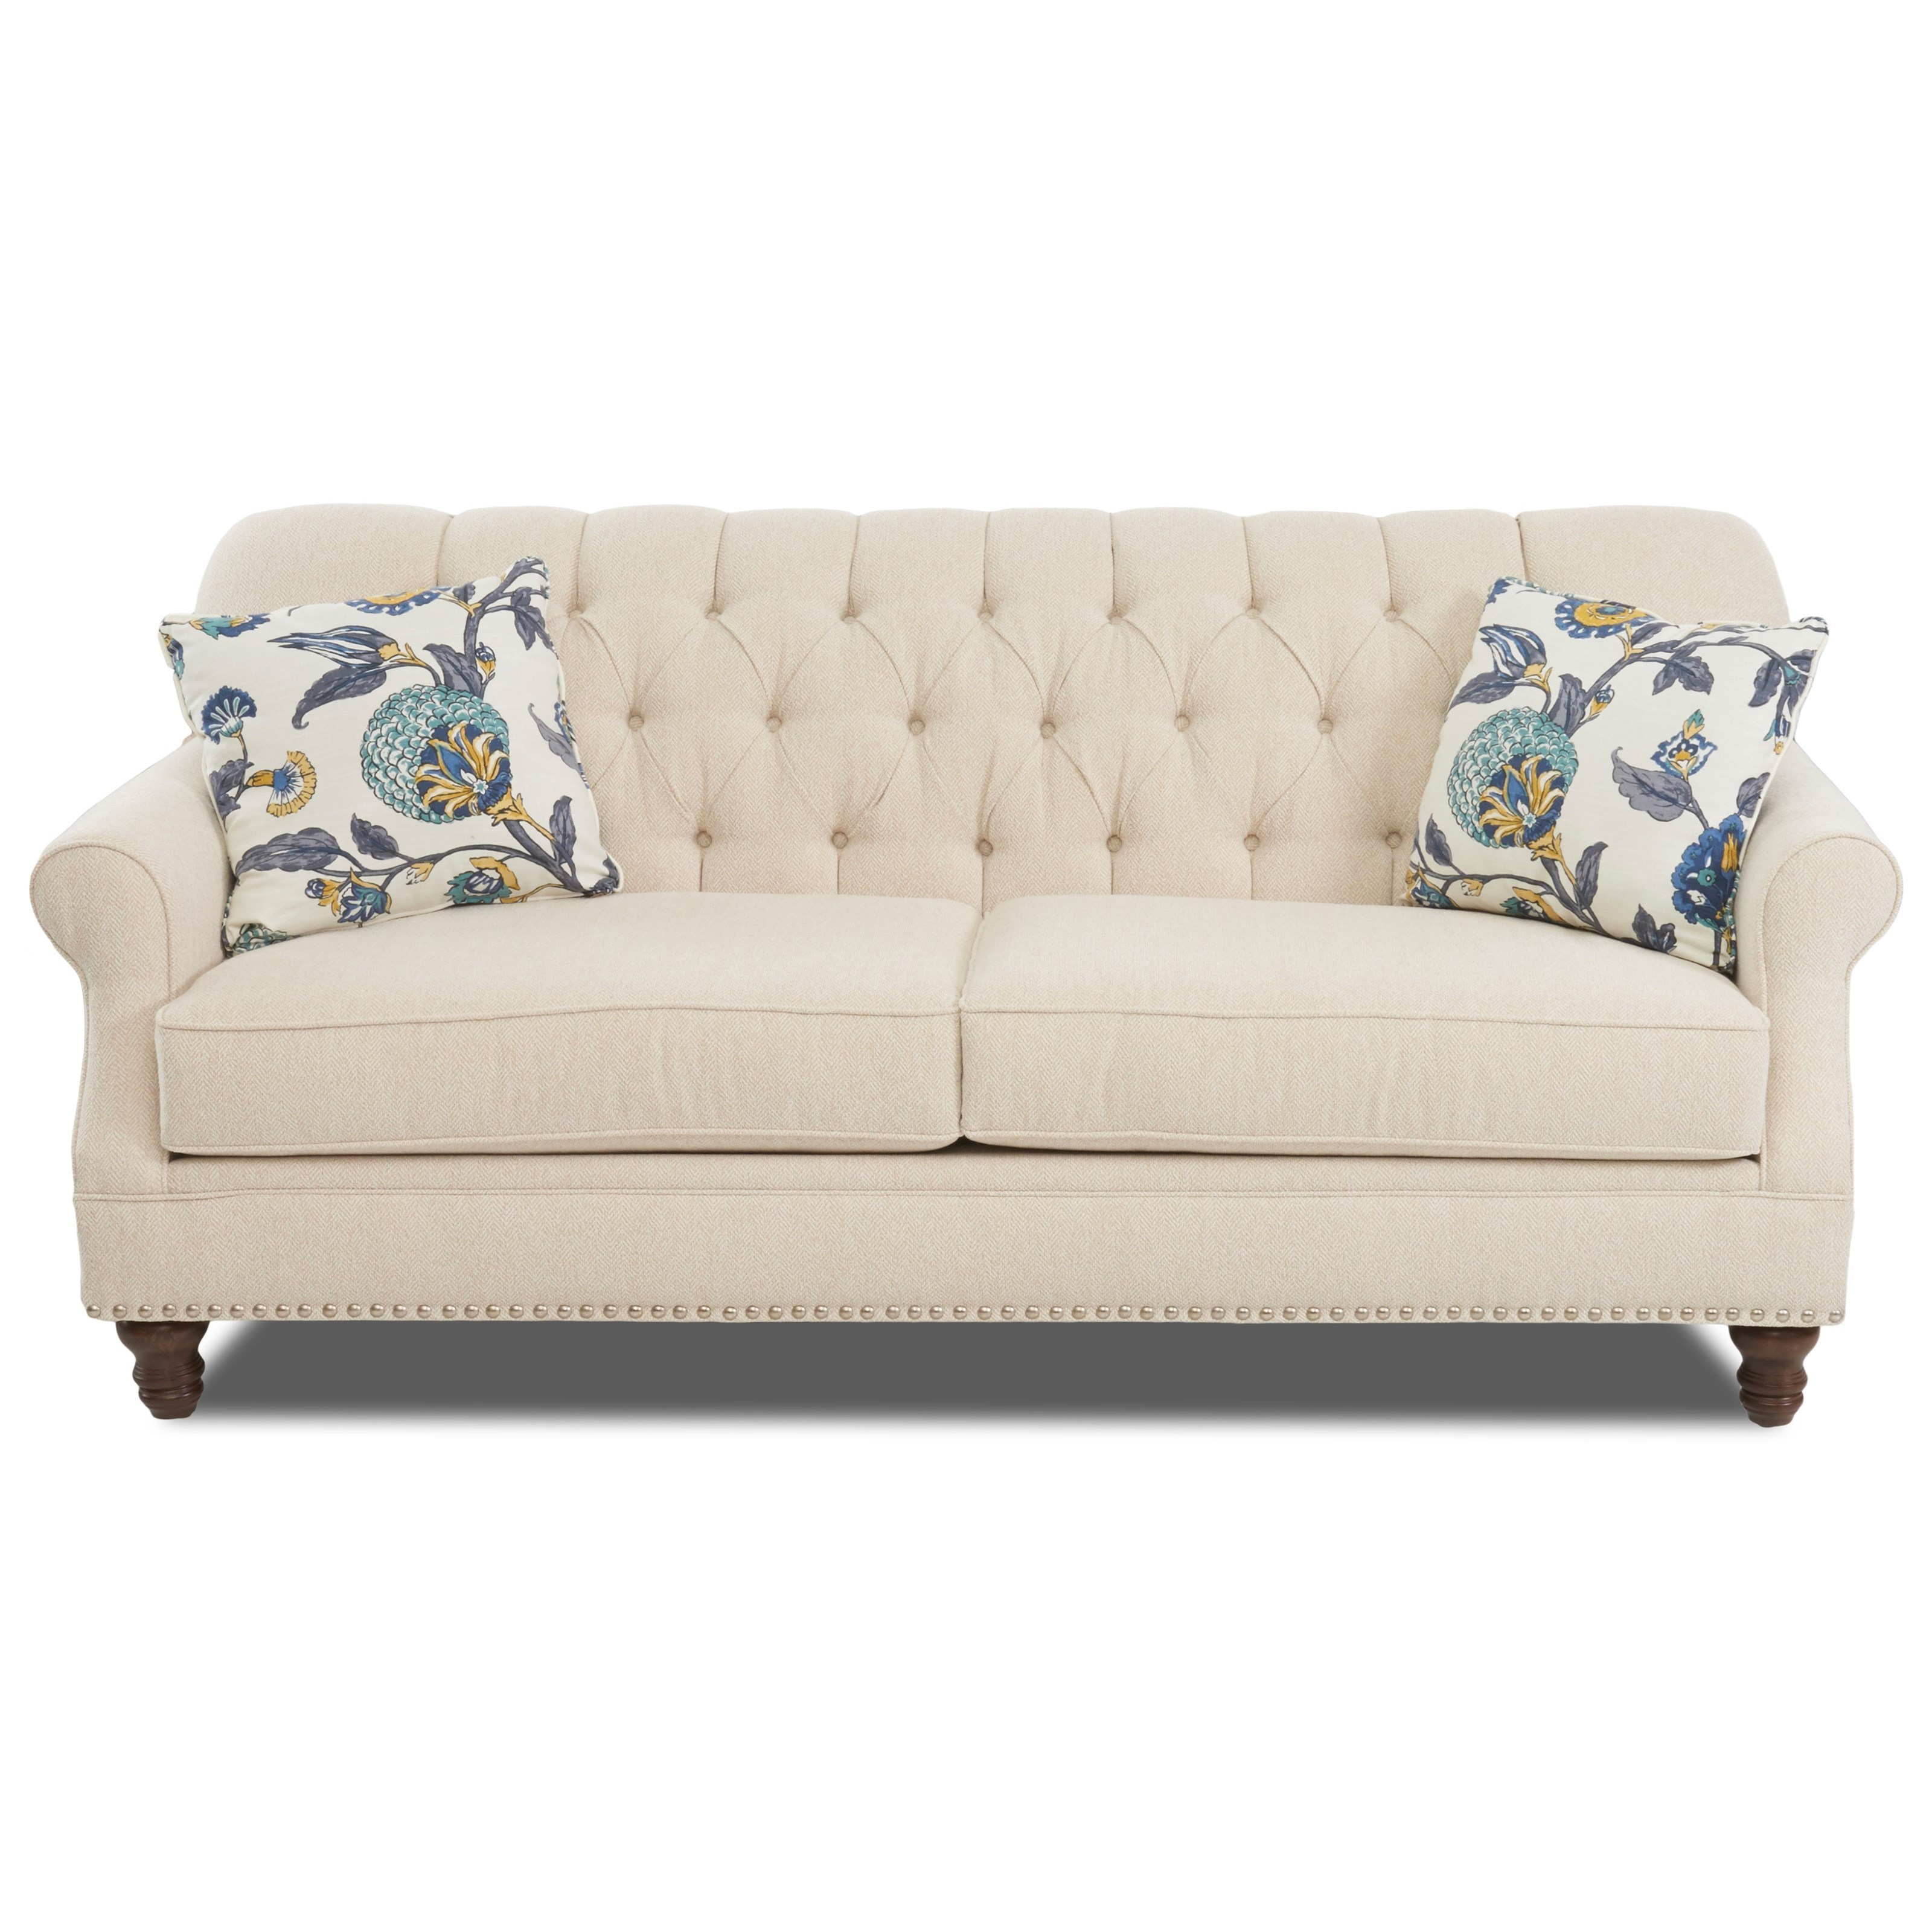 Sofa S Burbank Traditional Tufted Apartment Size Sofa With Nailheads By Klaussner At Sheely S Furniture Appliance